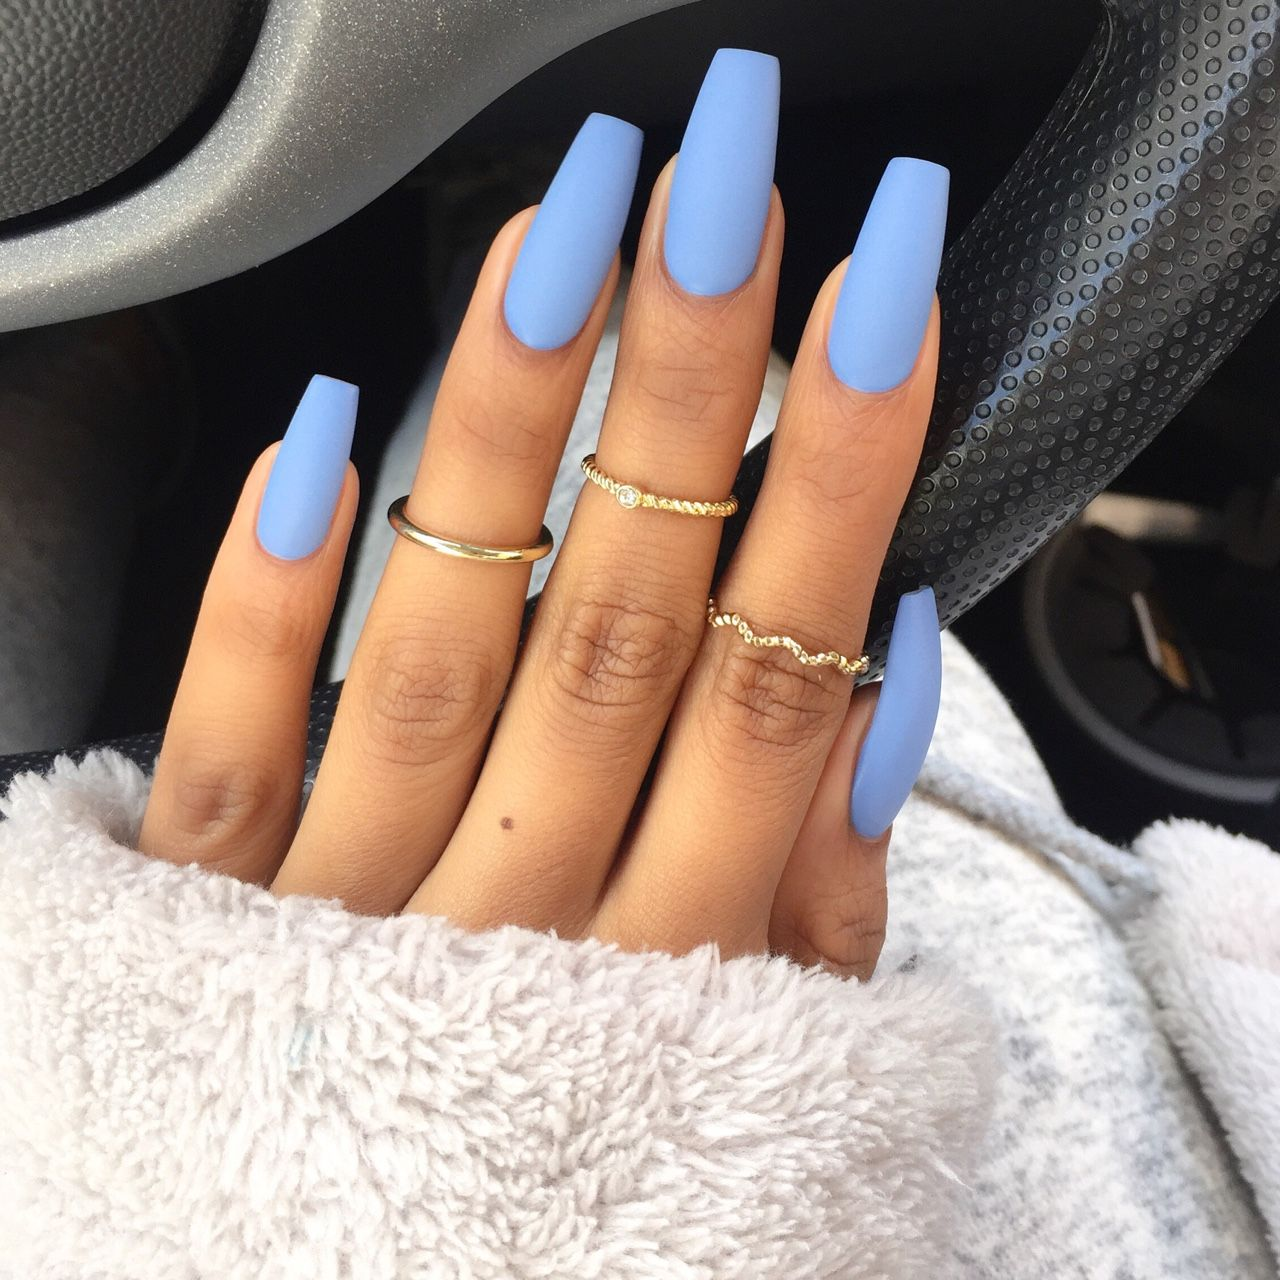 Pin by Asfaaltaf Salim on nice | Pinterest | Makeup, Nail inspo and ...